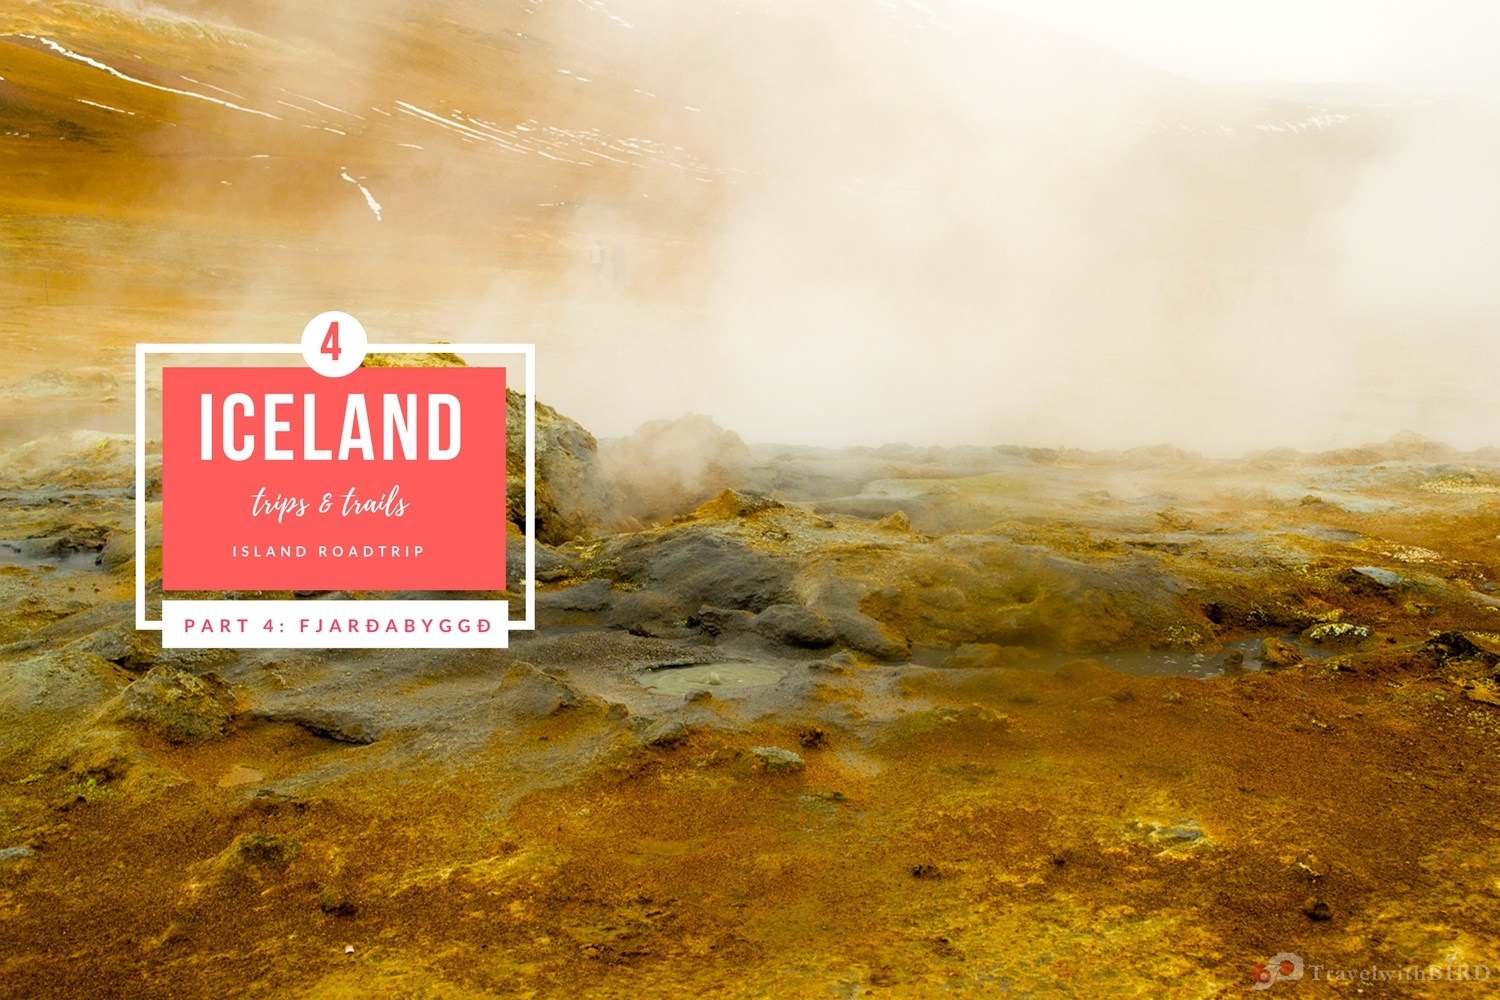 East Iceland attractions – Iceland Roadtrip in 7 days (Part 4)